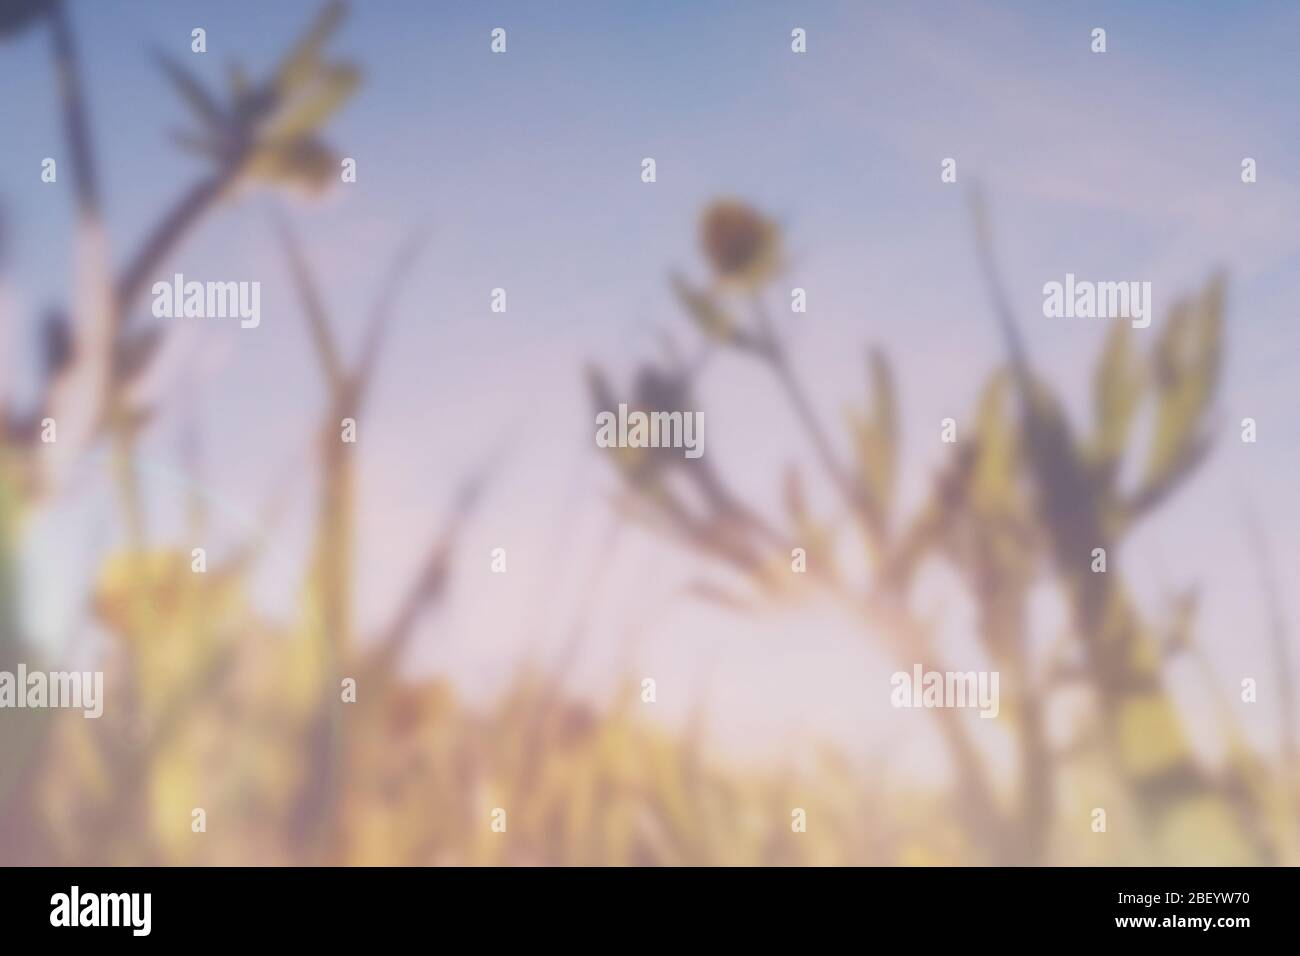 A double exposure with vintage light leaks of a close up of blurred buttercups (Ranunculus) With an abstract, experimental dream like edit. Stock Photo